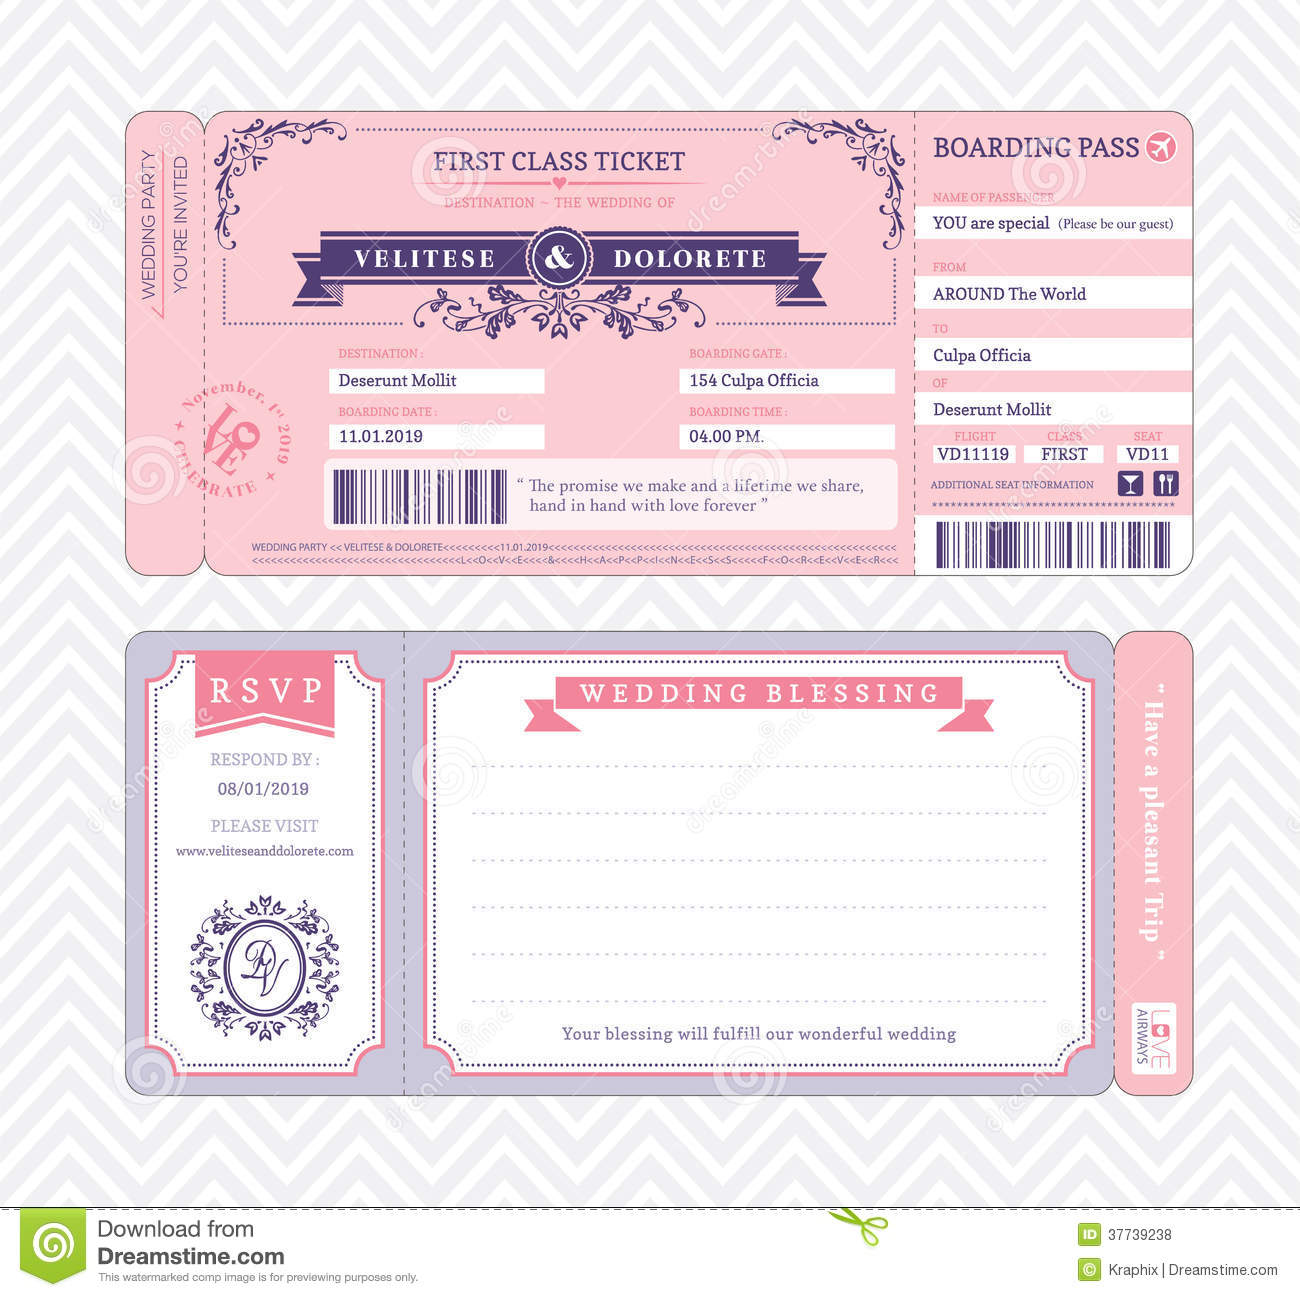 Boarding Pass Wedding Invitation Template  Free Invitation Design Templates